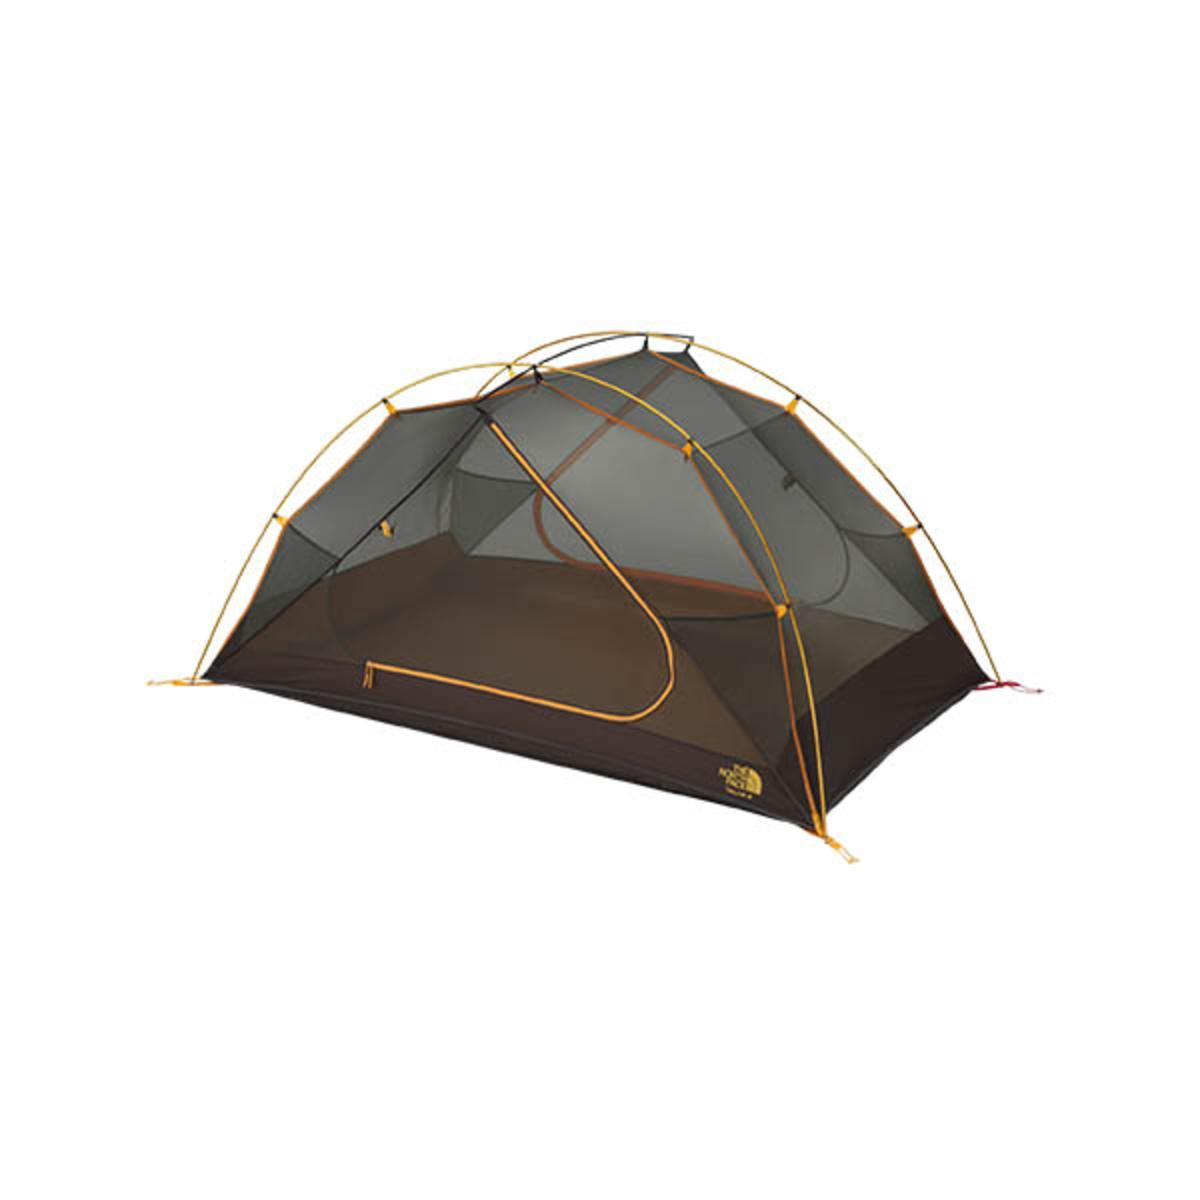 f981b42ca8cb The North Face Talus 2 Tent - The Warming Store